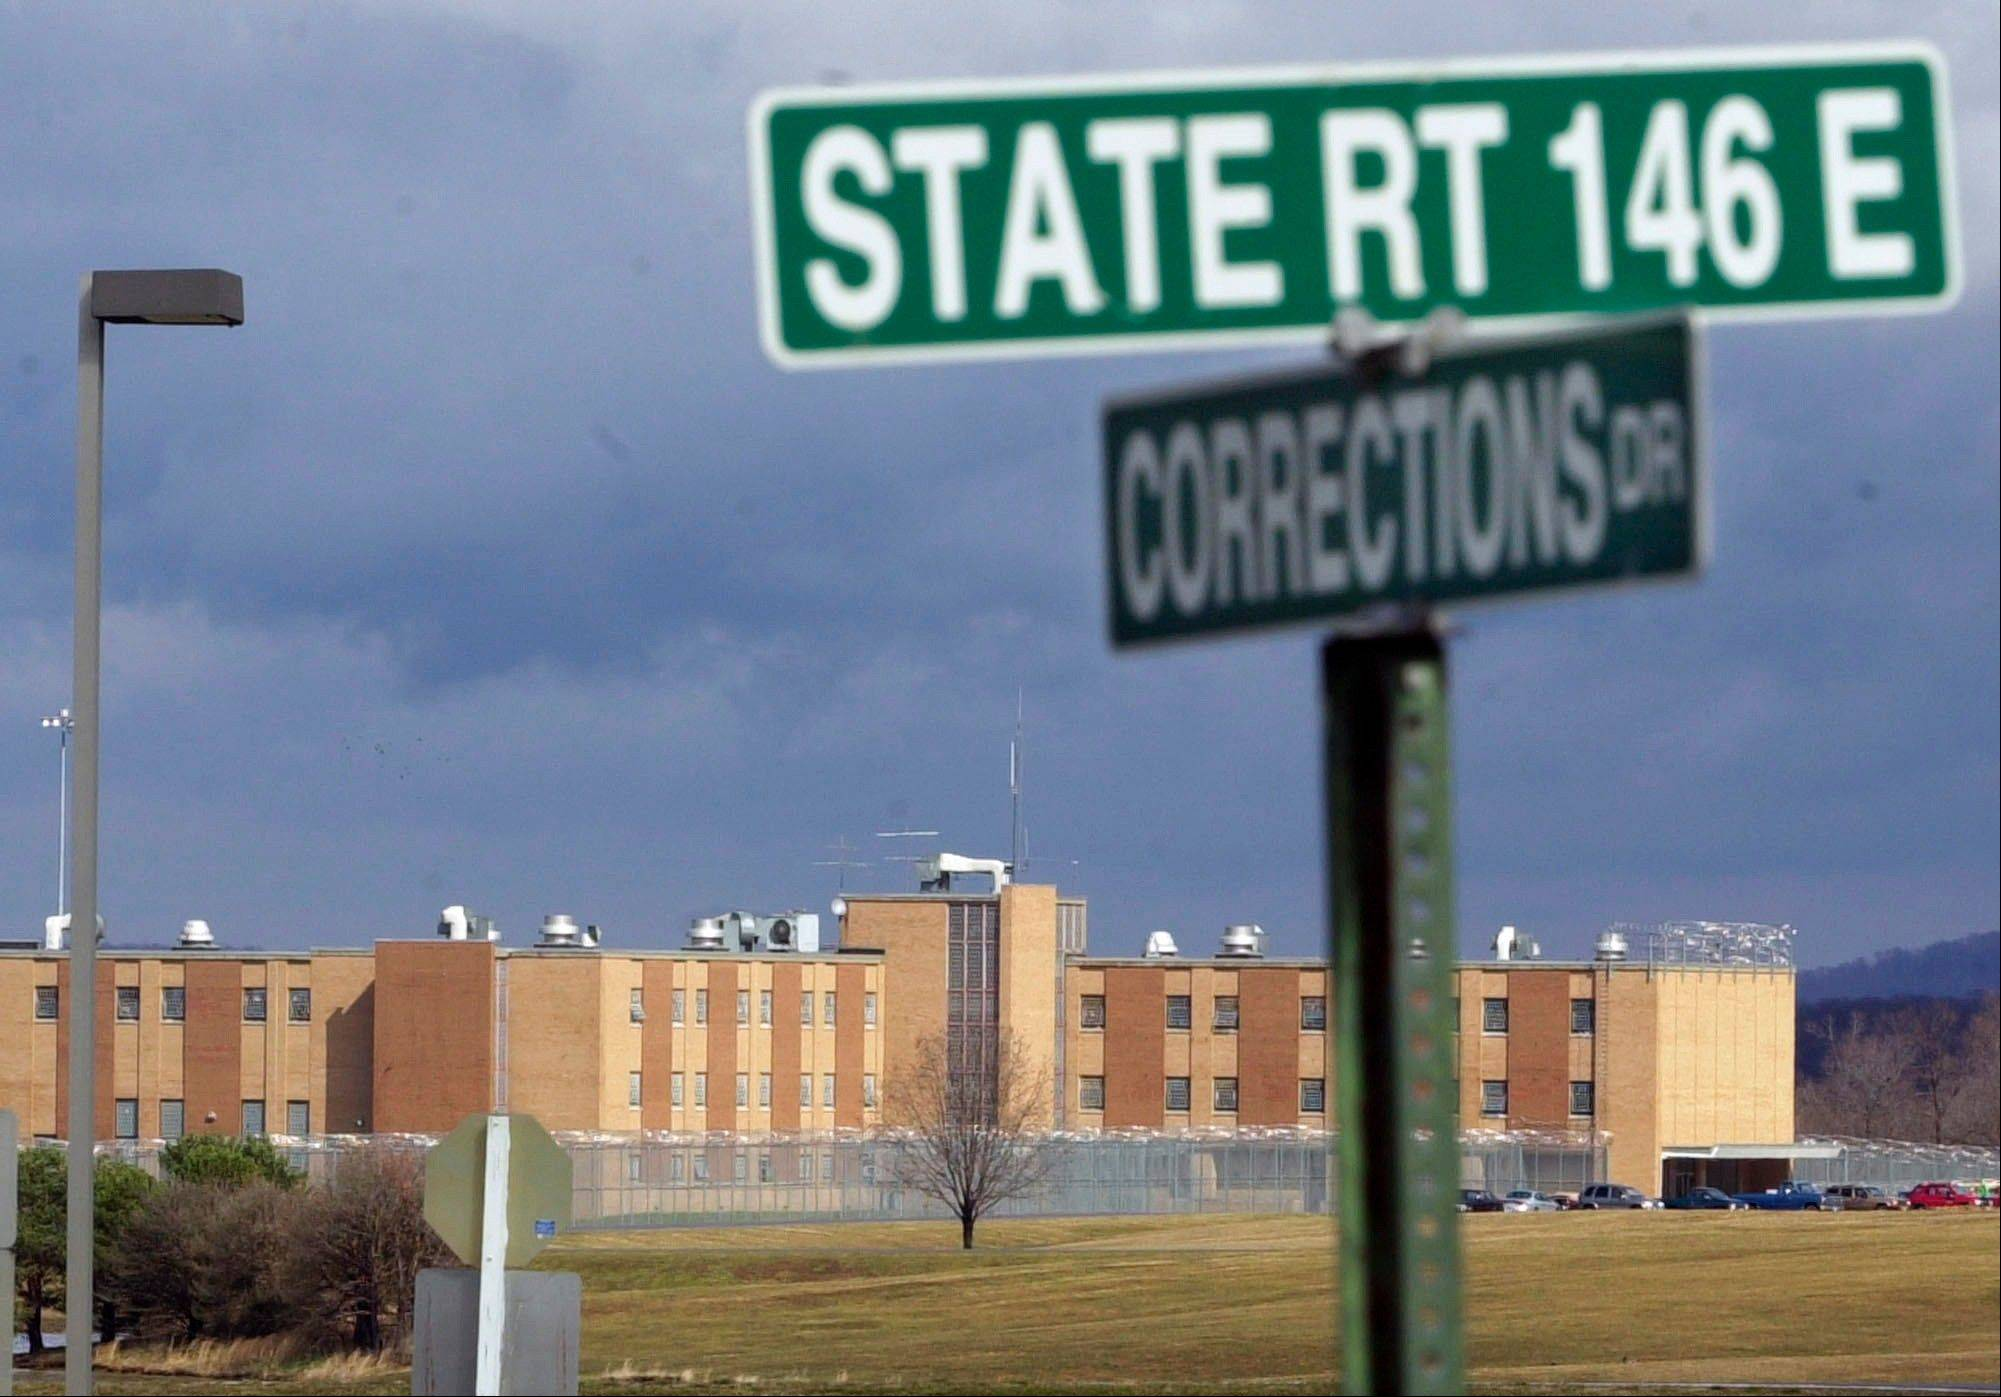 Reporters took a two-hour tour of the minimum-security Vienna Correctional Center in deep southern Illinois on Friday. Cameras were banned, however.